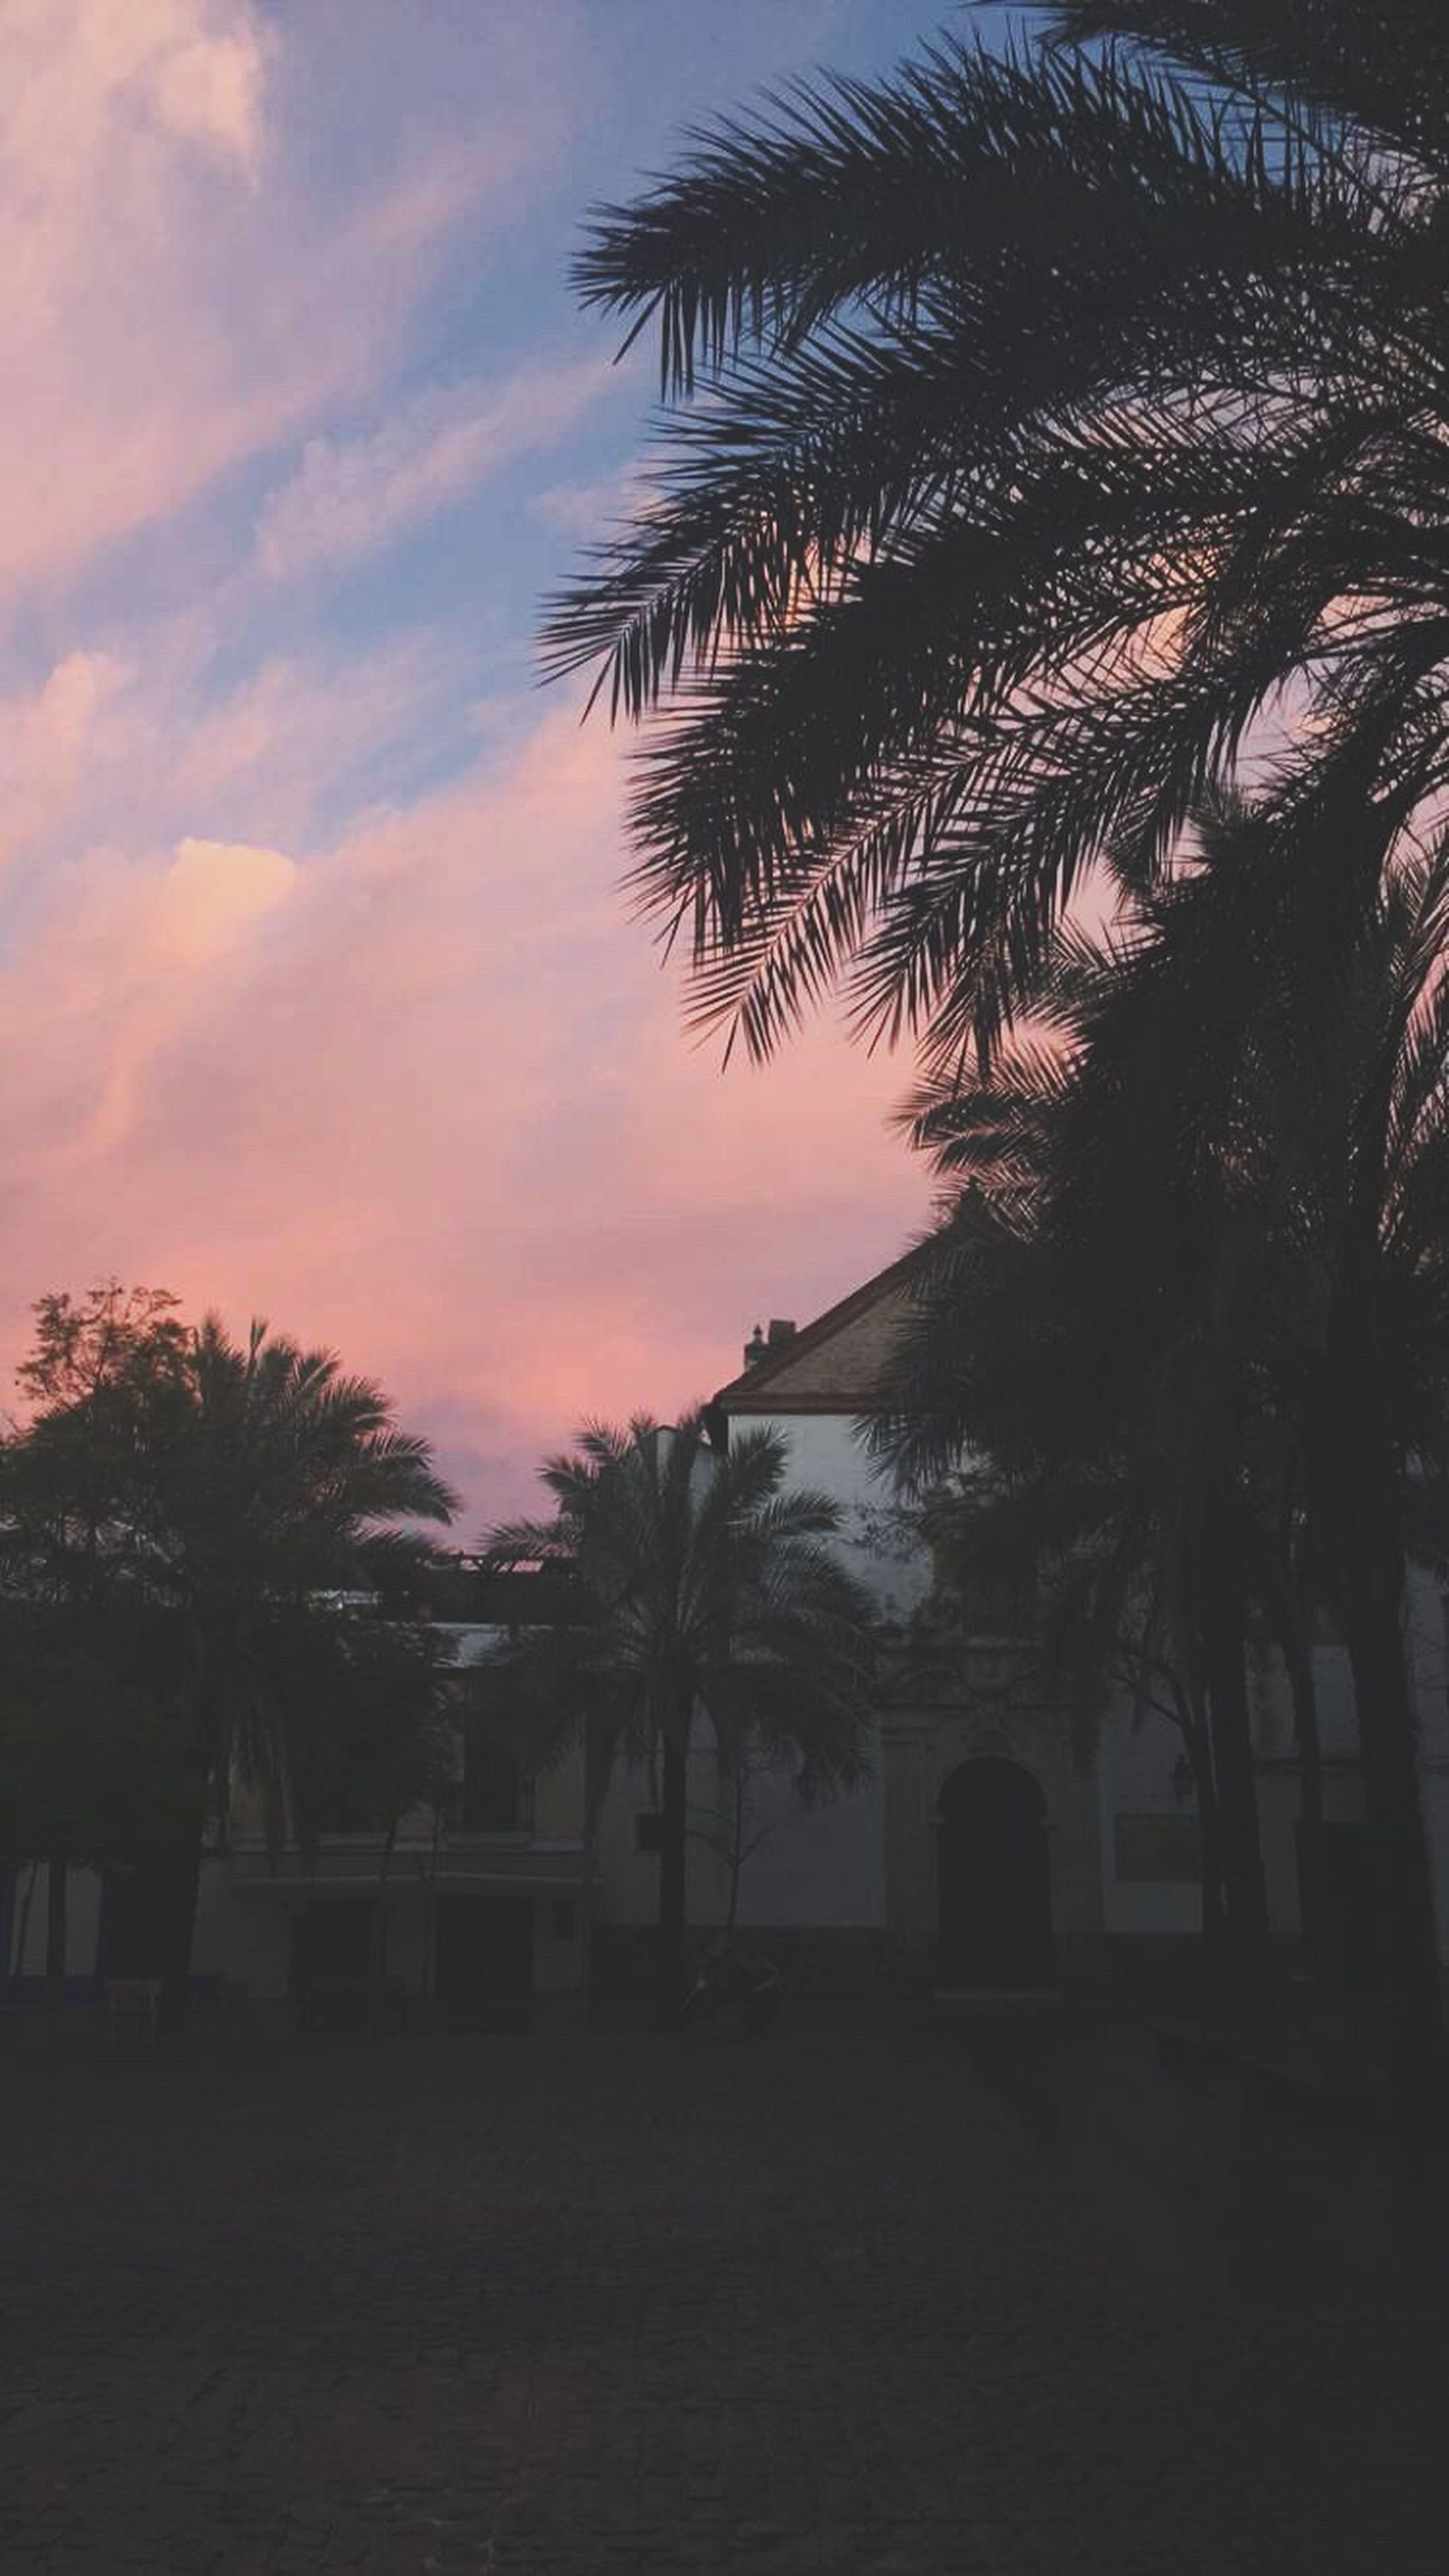 palm tree, tree, sunset, sky, built structure, architecture, building exterior, silhouette, tranquility, growth, cloud - sky, nature, beauty in nature, tranquil scene, scenics, orange color, house, outdoors, cloud, no people